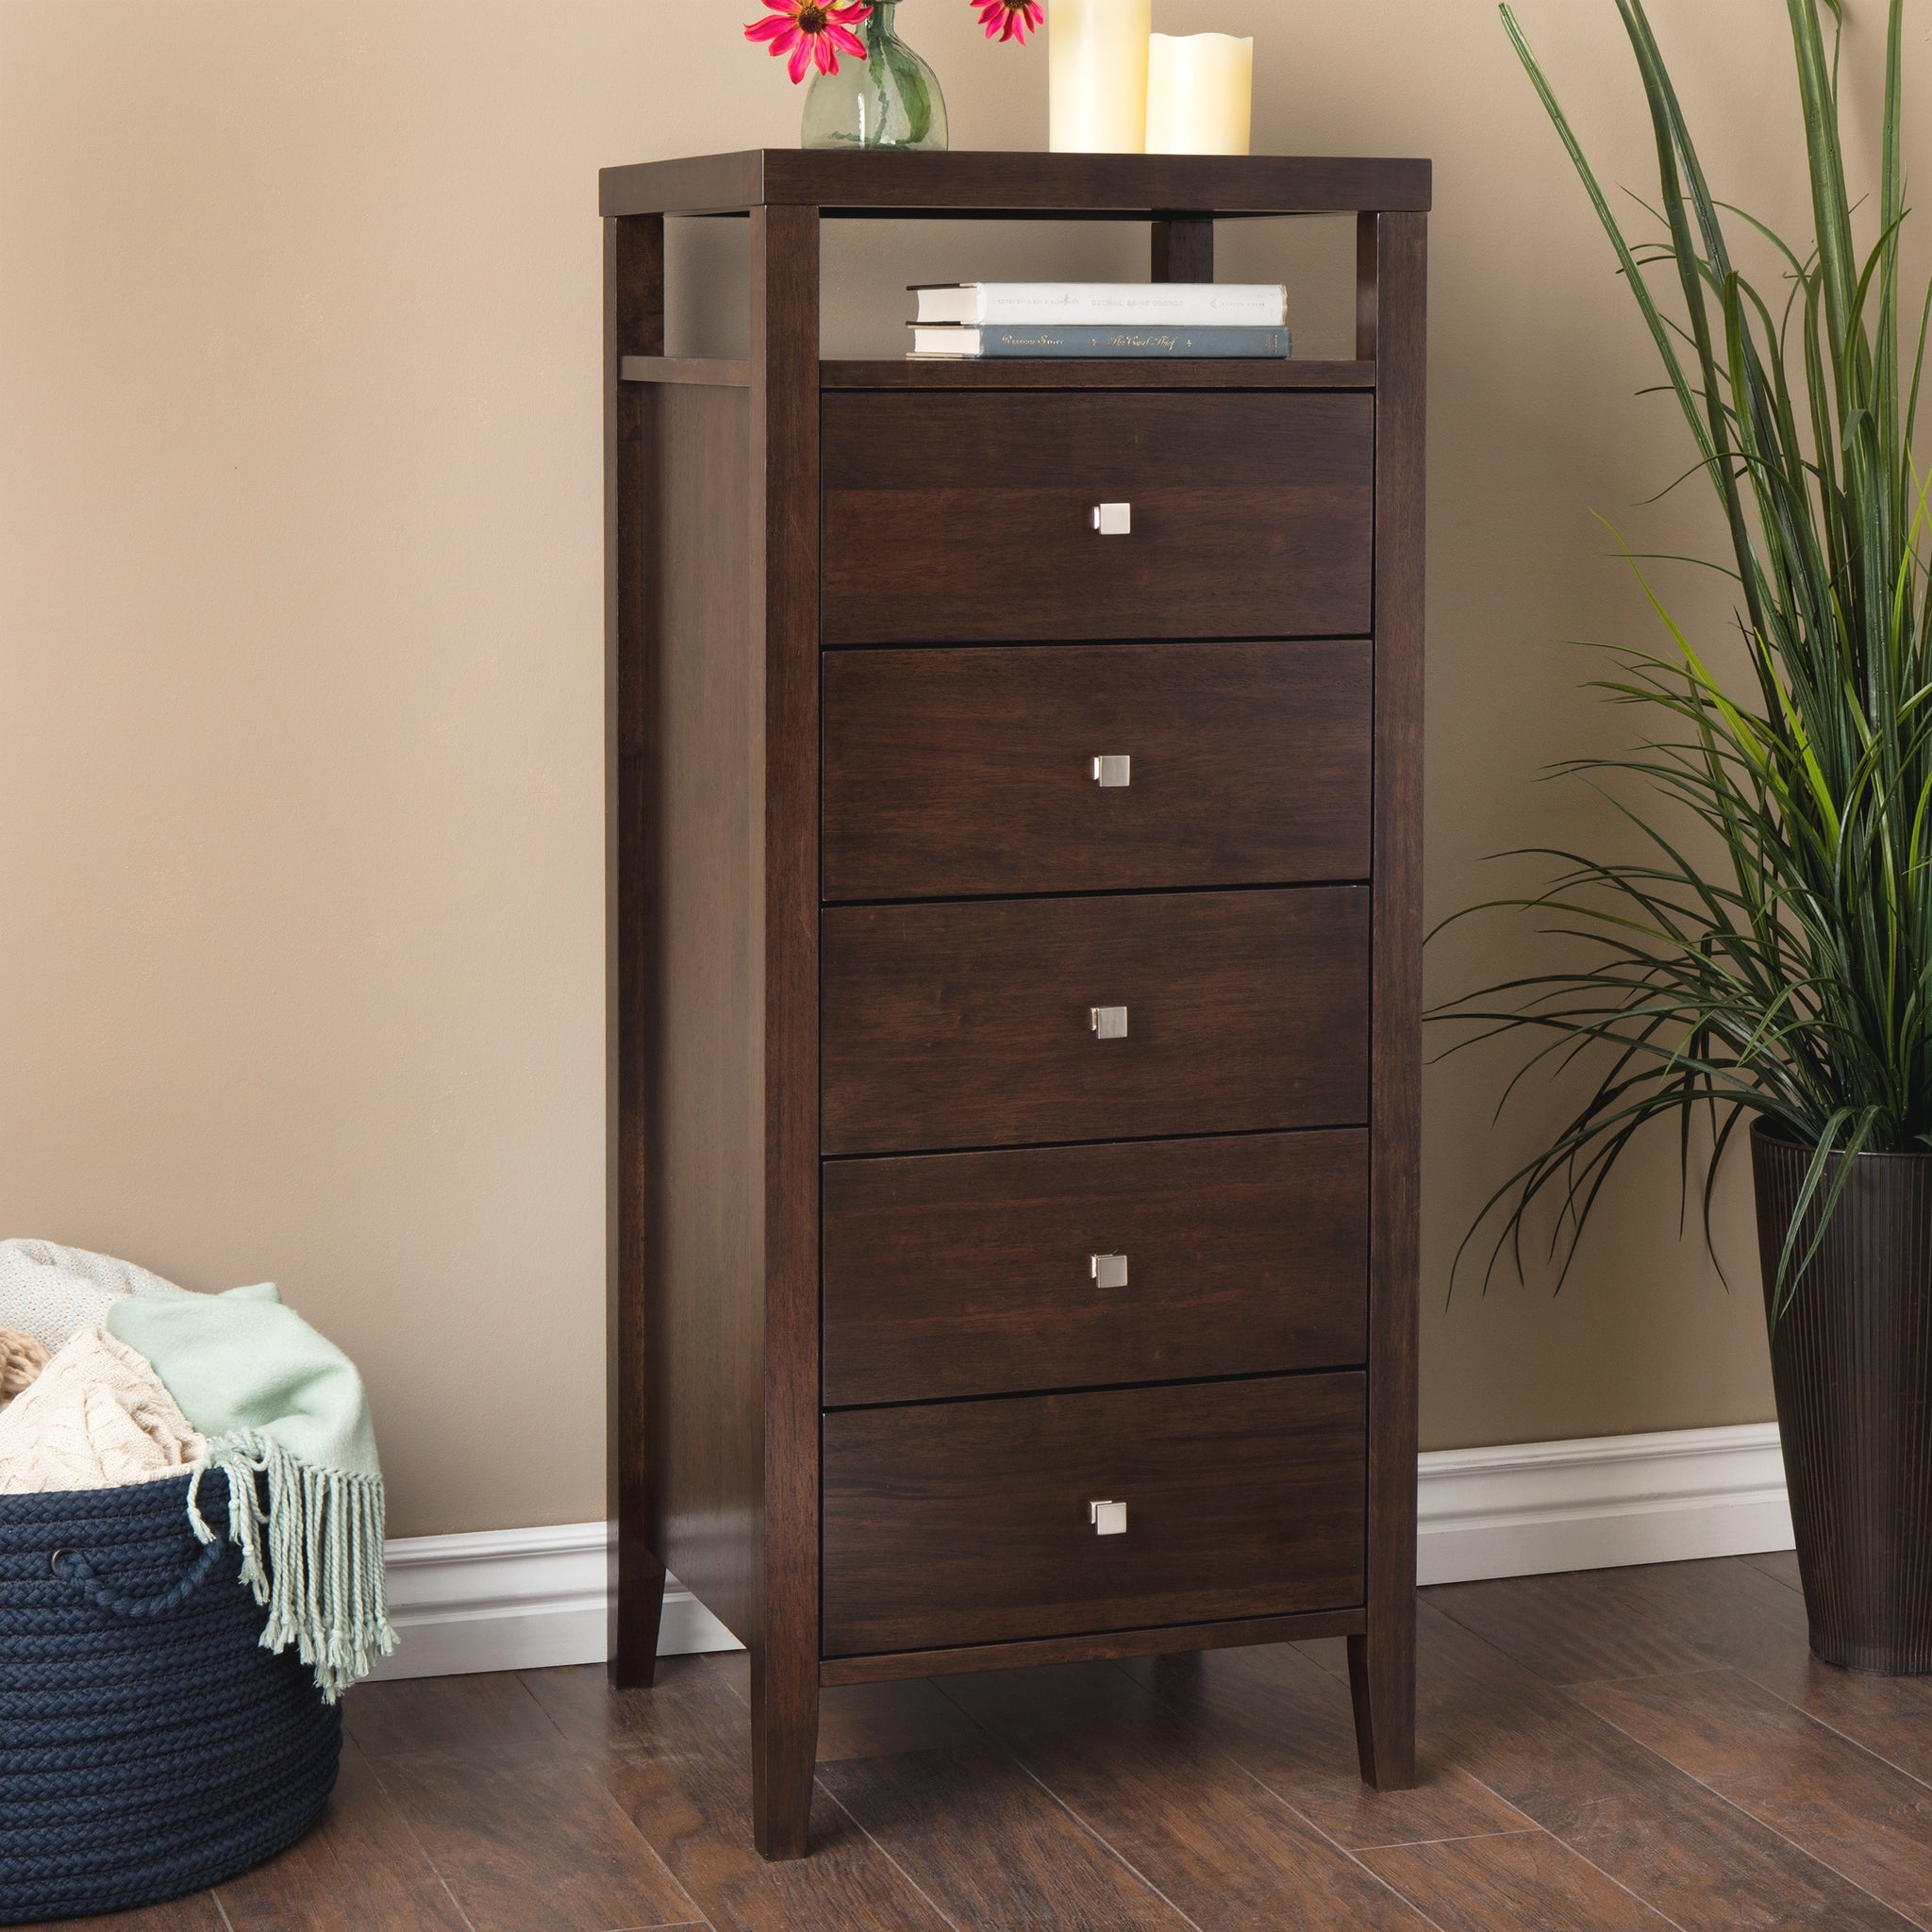 Five-drawer Lingerie Chest